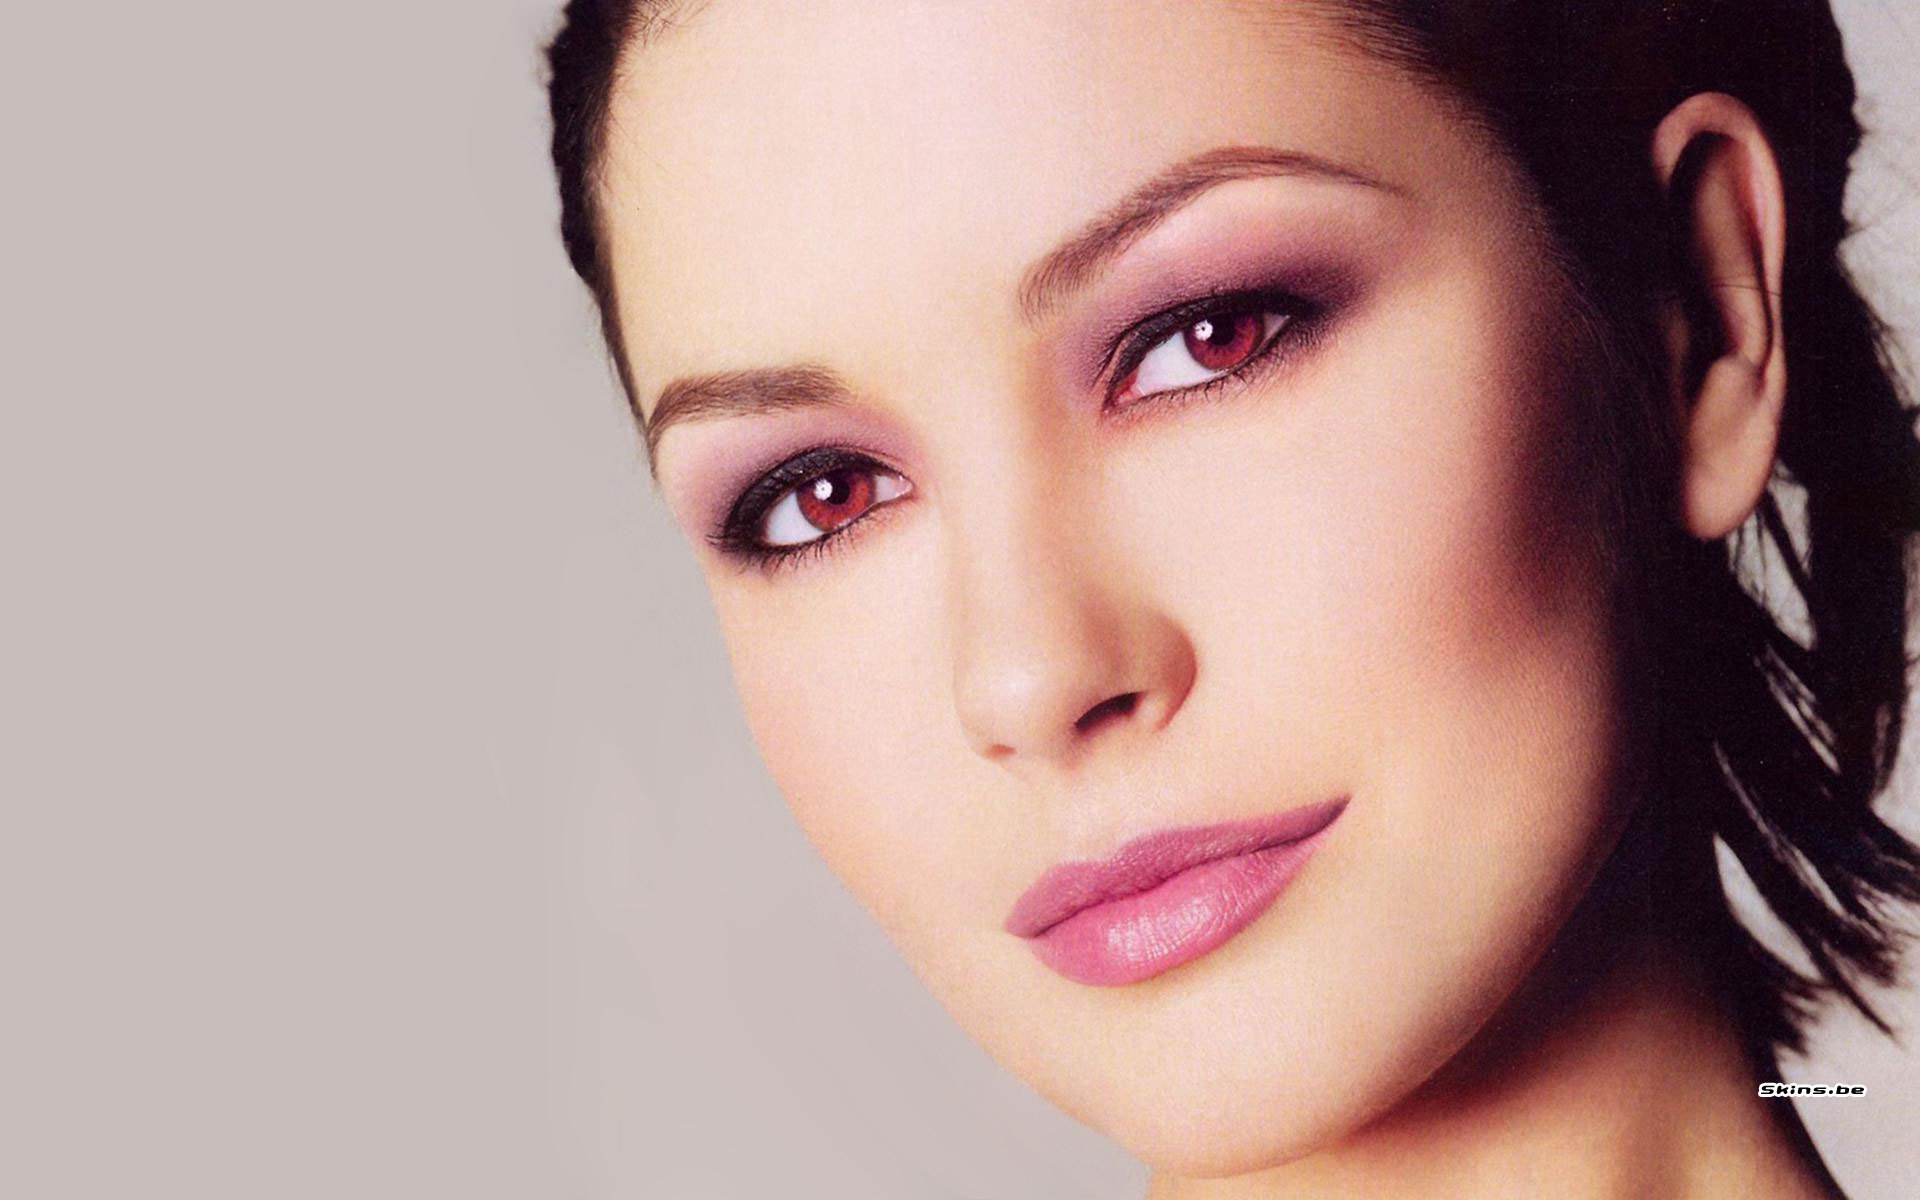 Makeup Star Libra Females Catherine Zeta-Jones-1